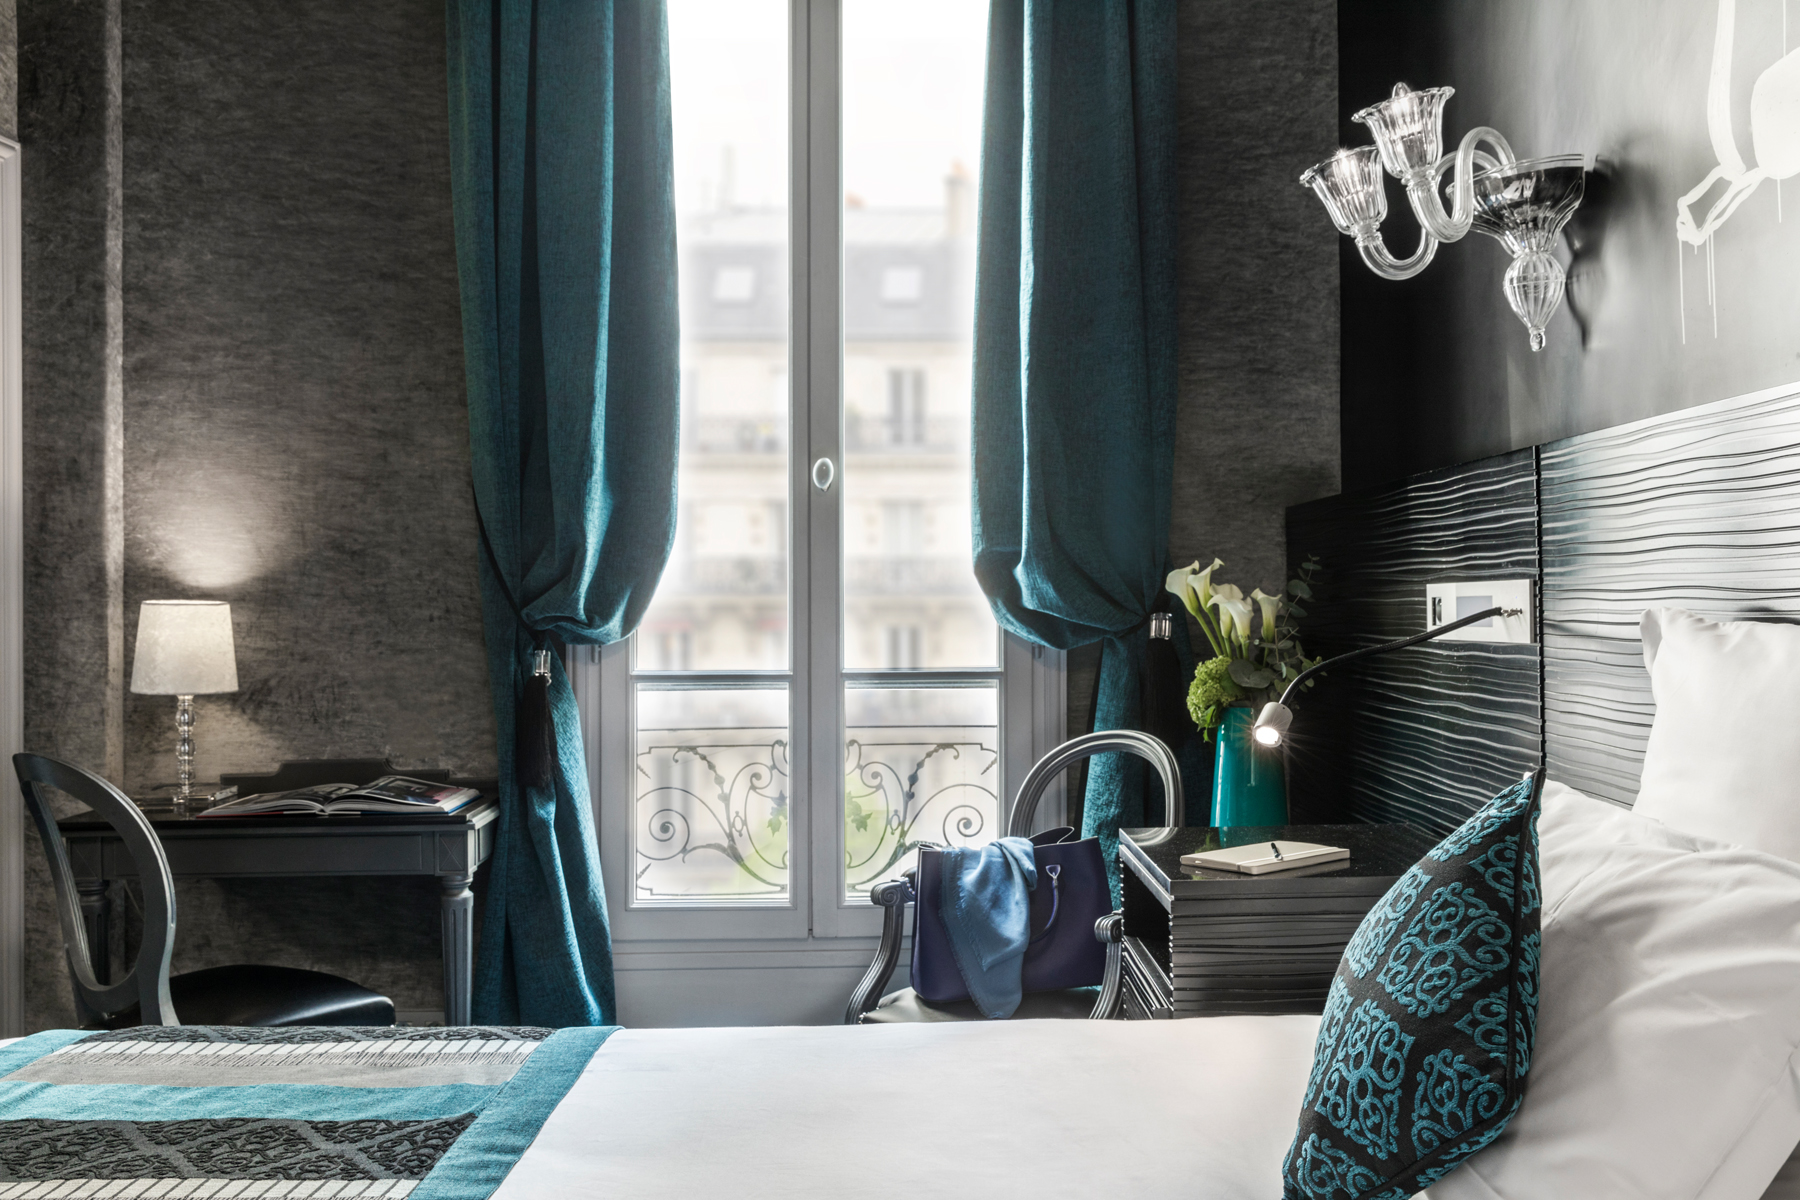 101/Champs Elysees/Chambres/PAGE CHAMBRE - SECTION 3 - CHAMBRE DELUXE 3.jpg